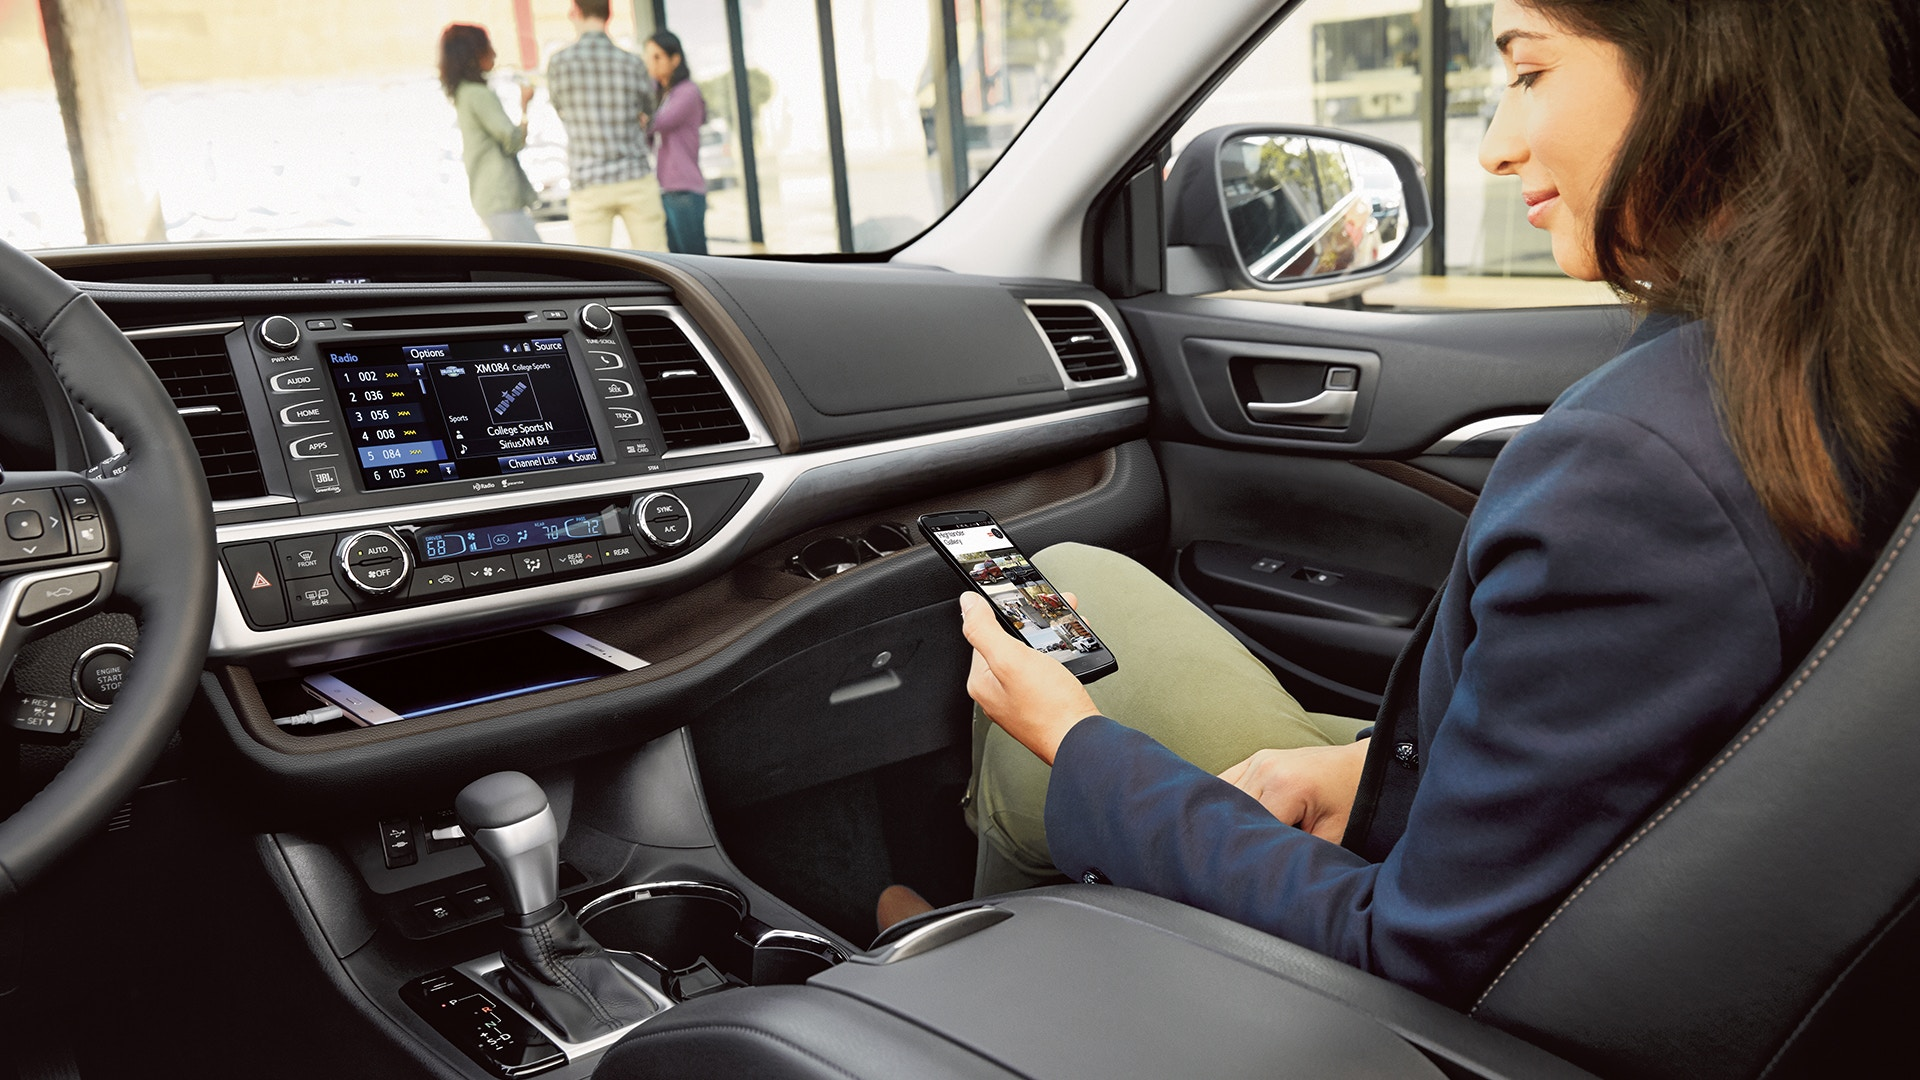 Plenty of Tech Options in the Highlander